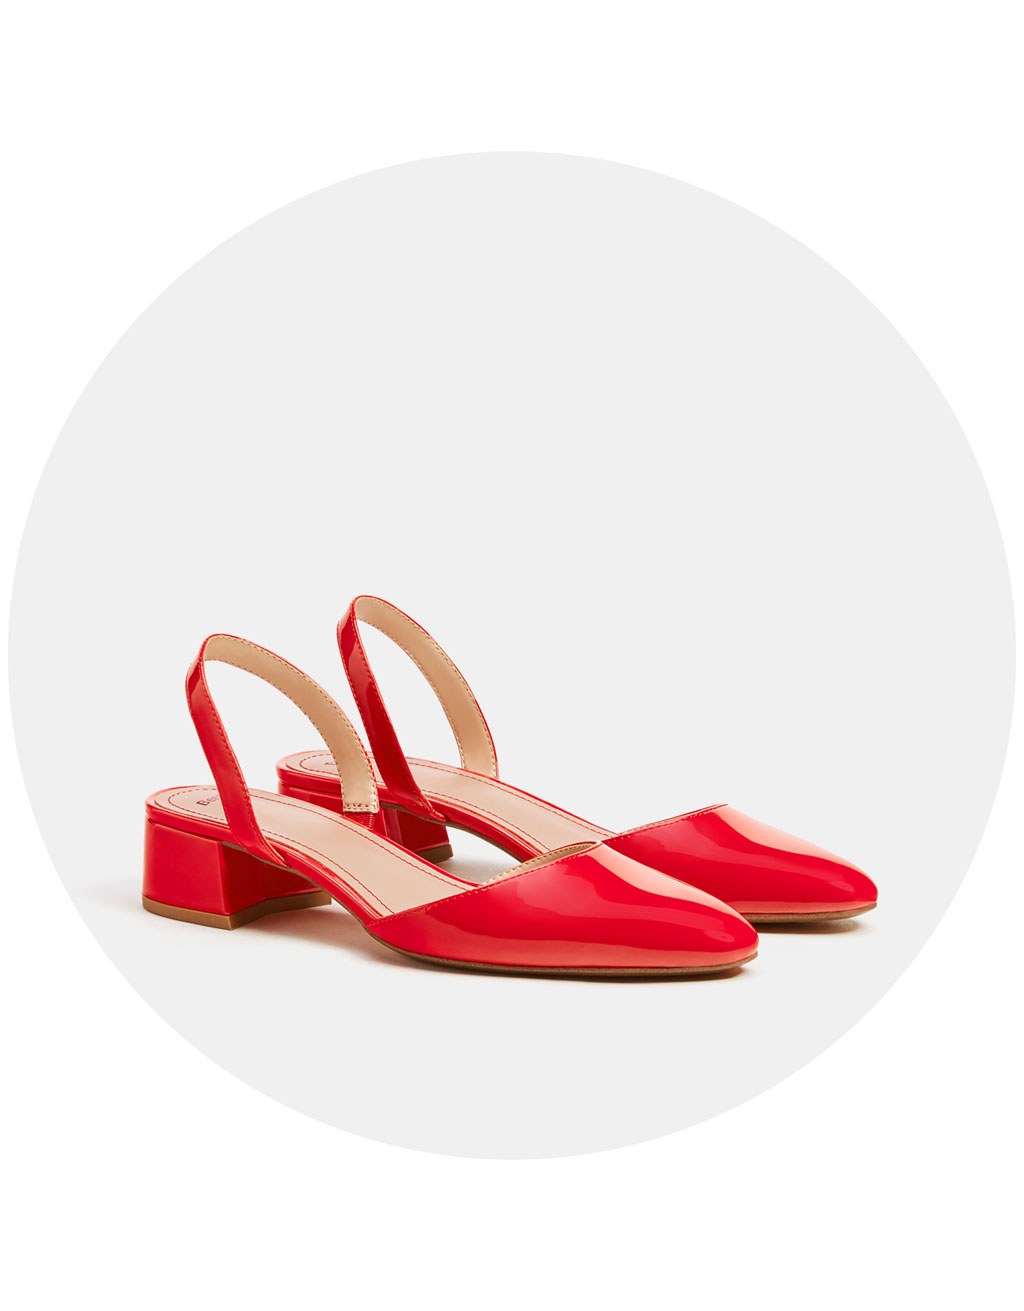 Mid heel slingback shoes